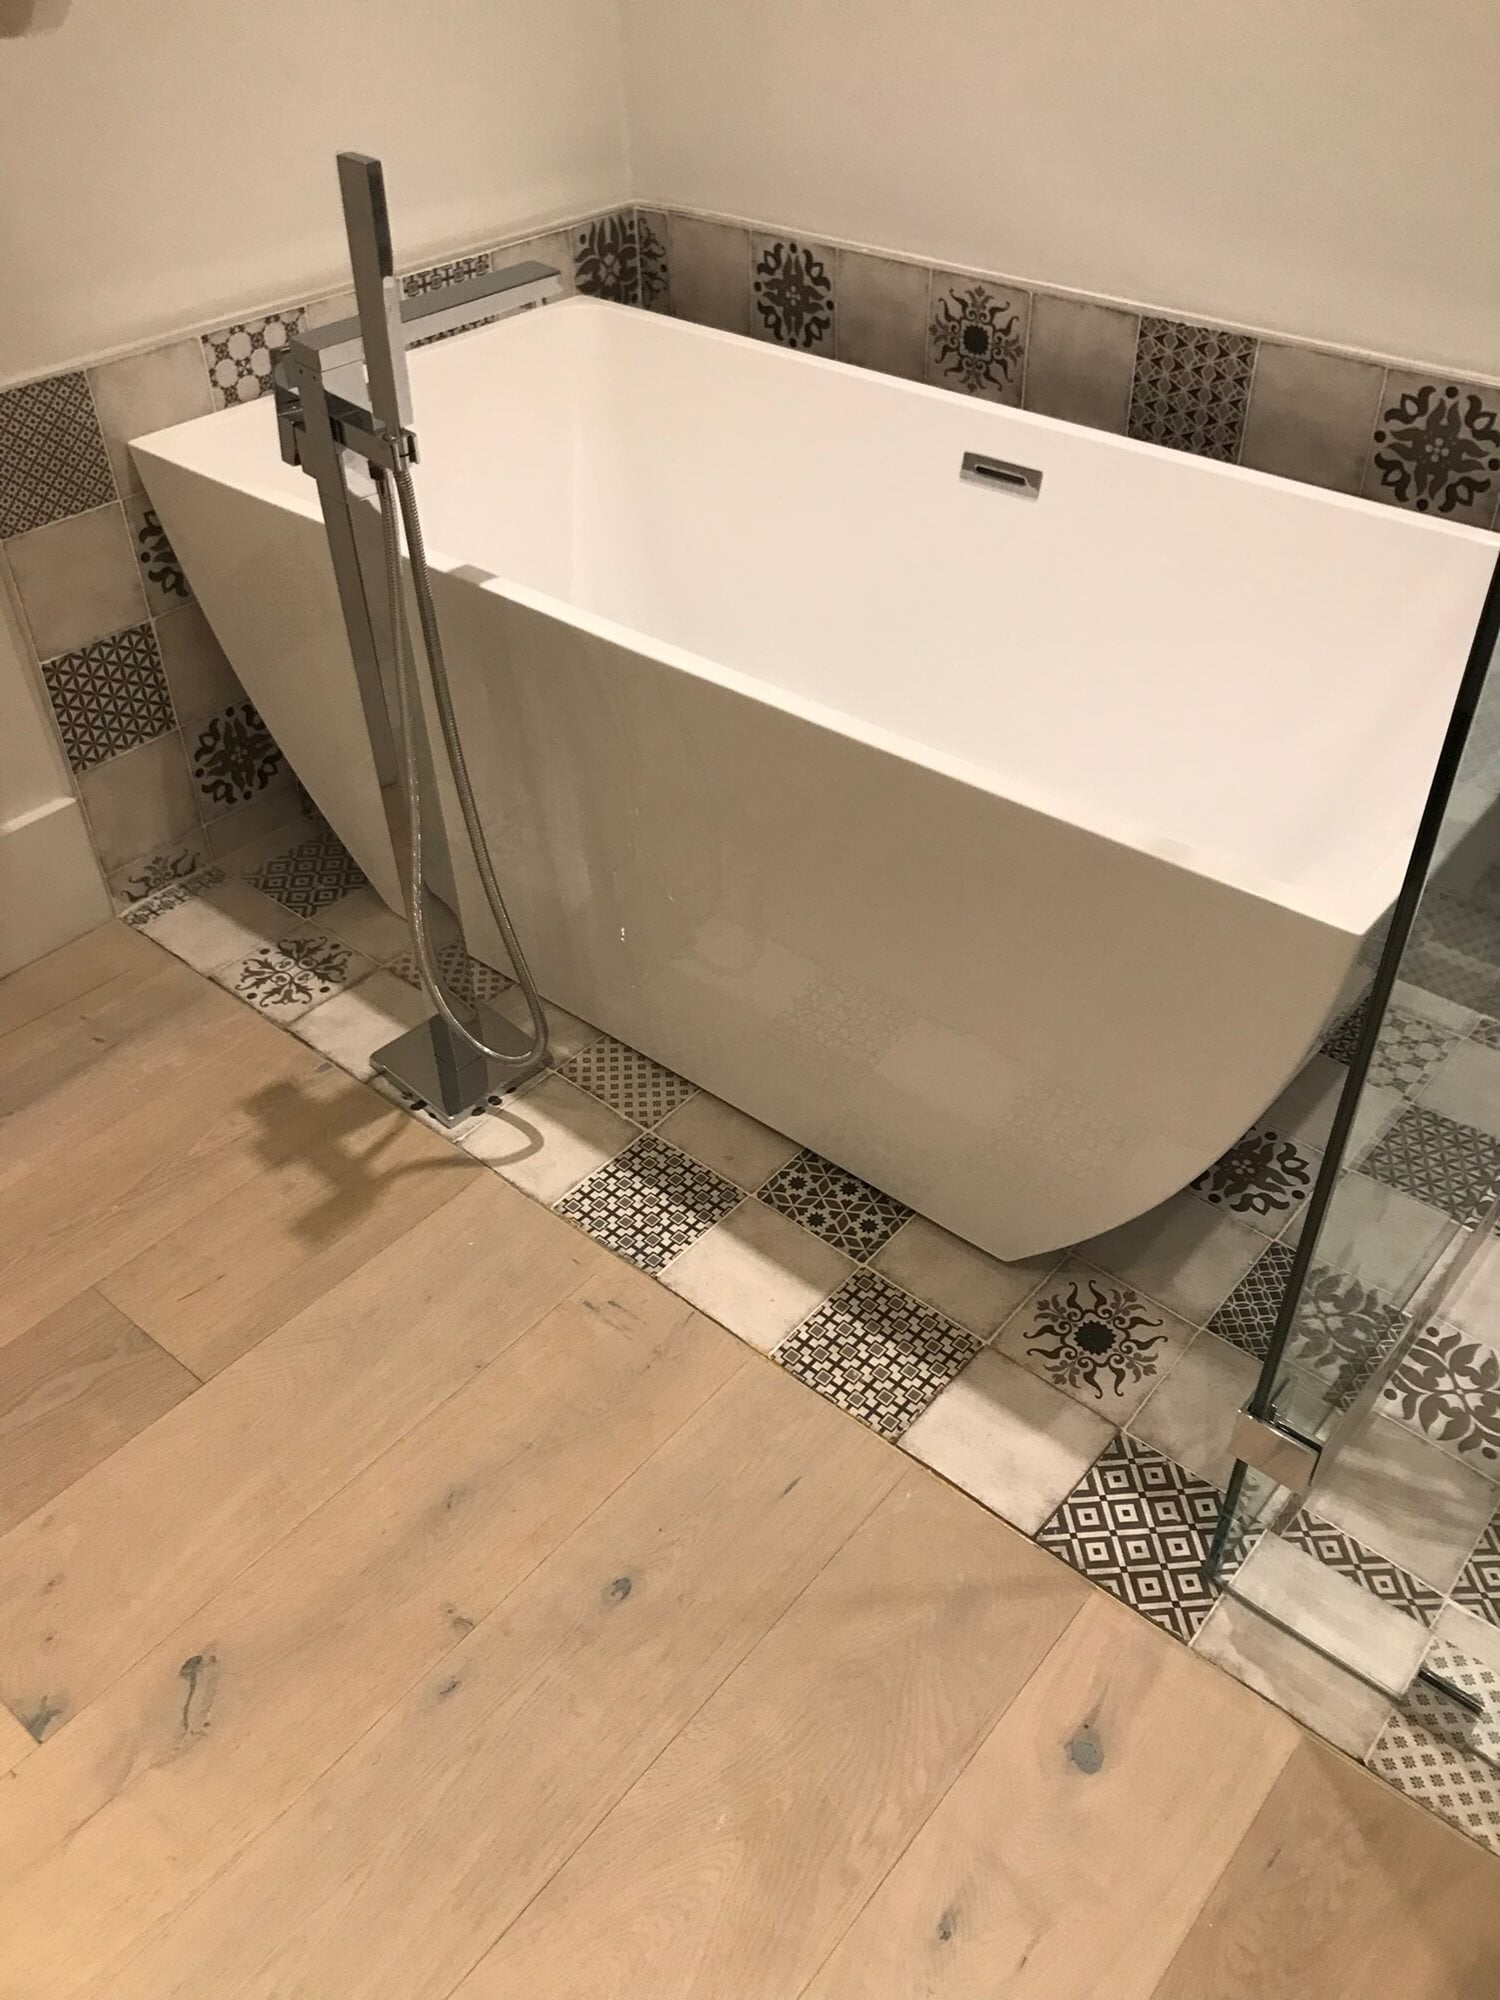 Patterned tile tub surround in Jupiter, FL from Floors For You Kitchen & Bath